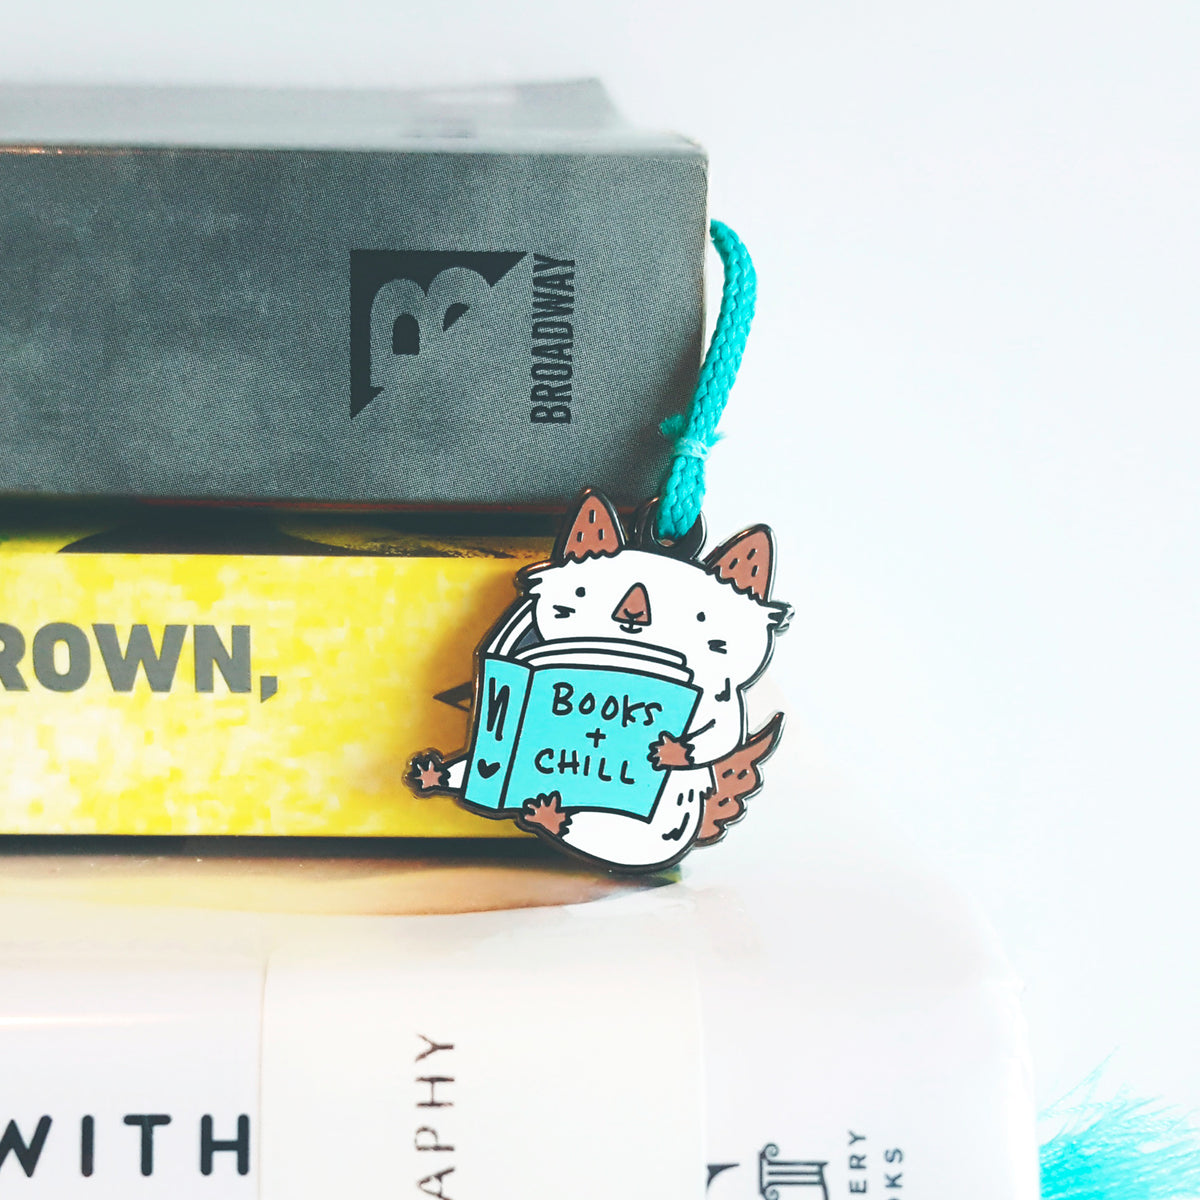 Books + Chill ~ Enamel charm and tassel cat bookmark by My Cat Is People. #booksandchill